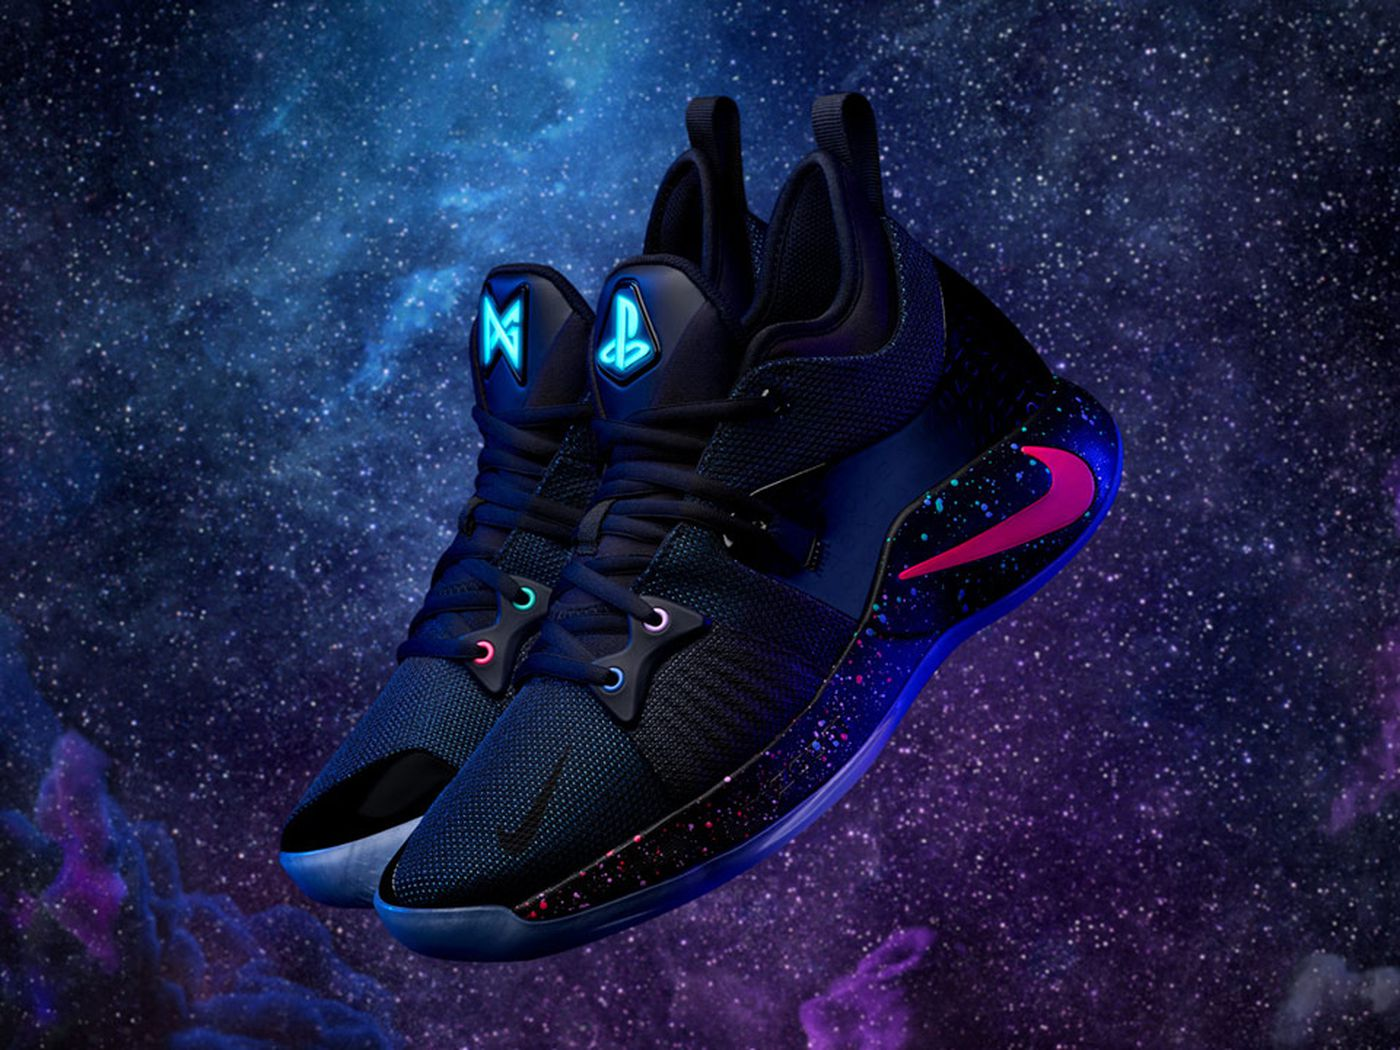 ea39a10b76d Nike and PlayStation unite on these limited edition sneakers - The Verge